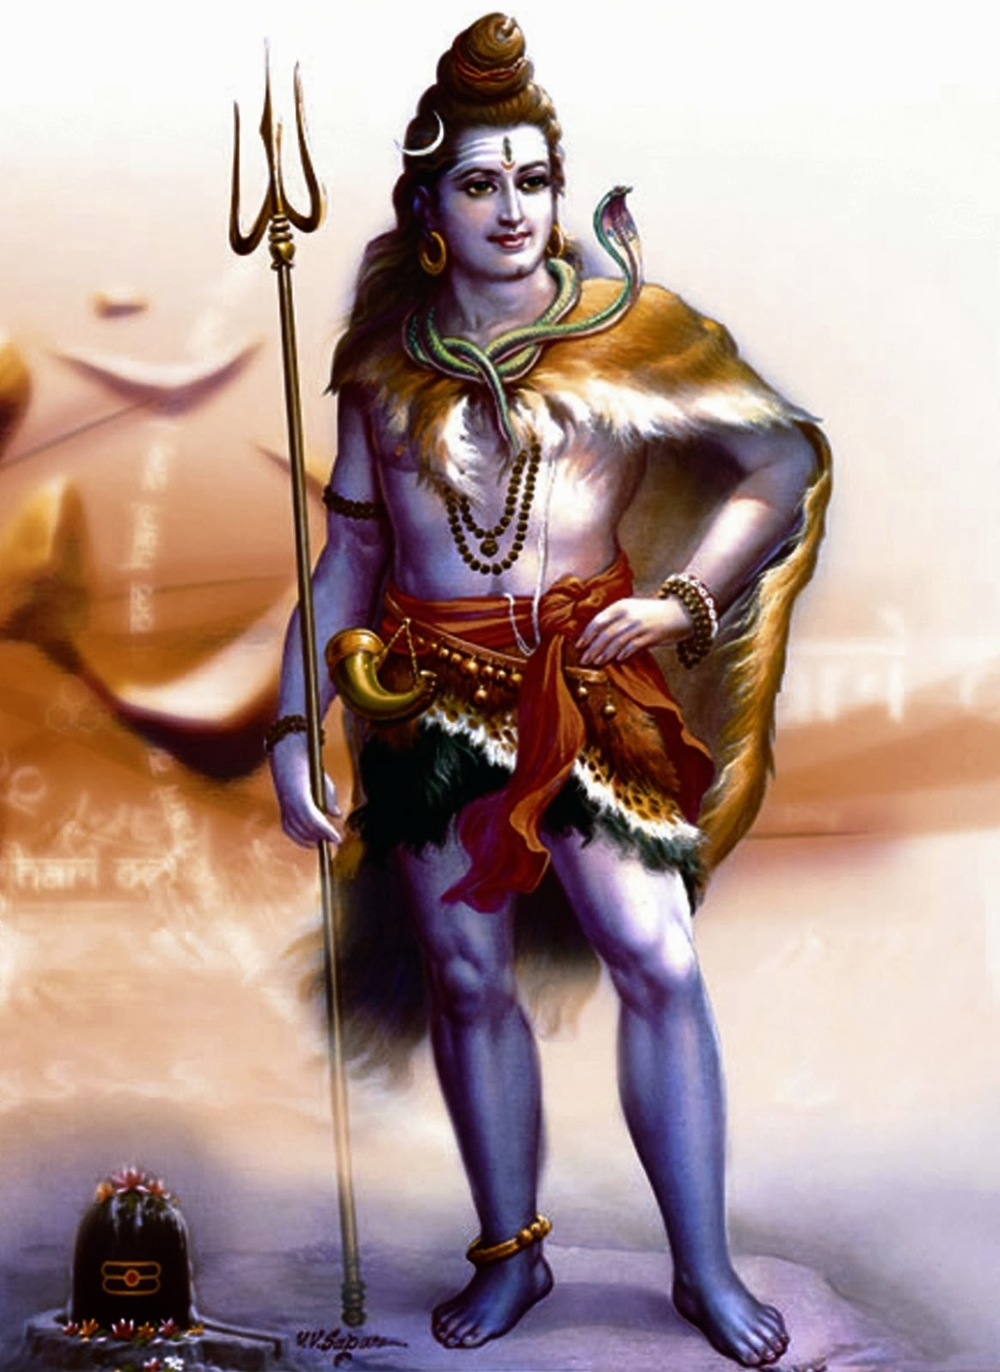 Lord-Shiva-Wallpapers-0111.jpg